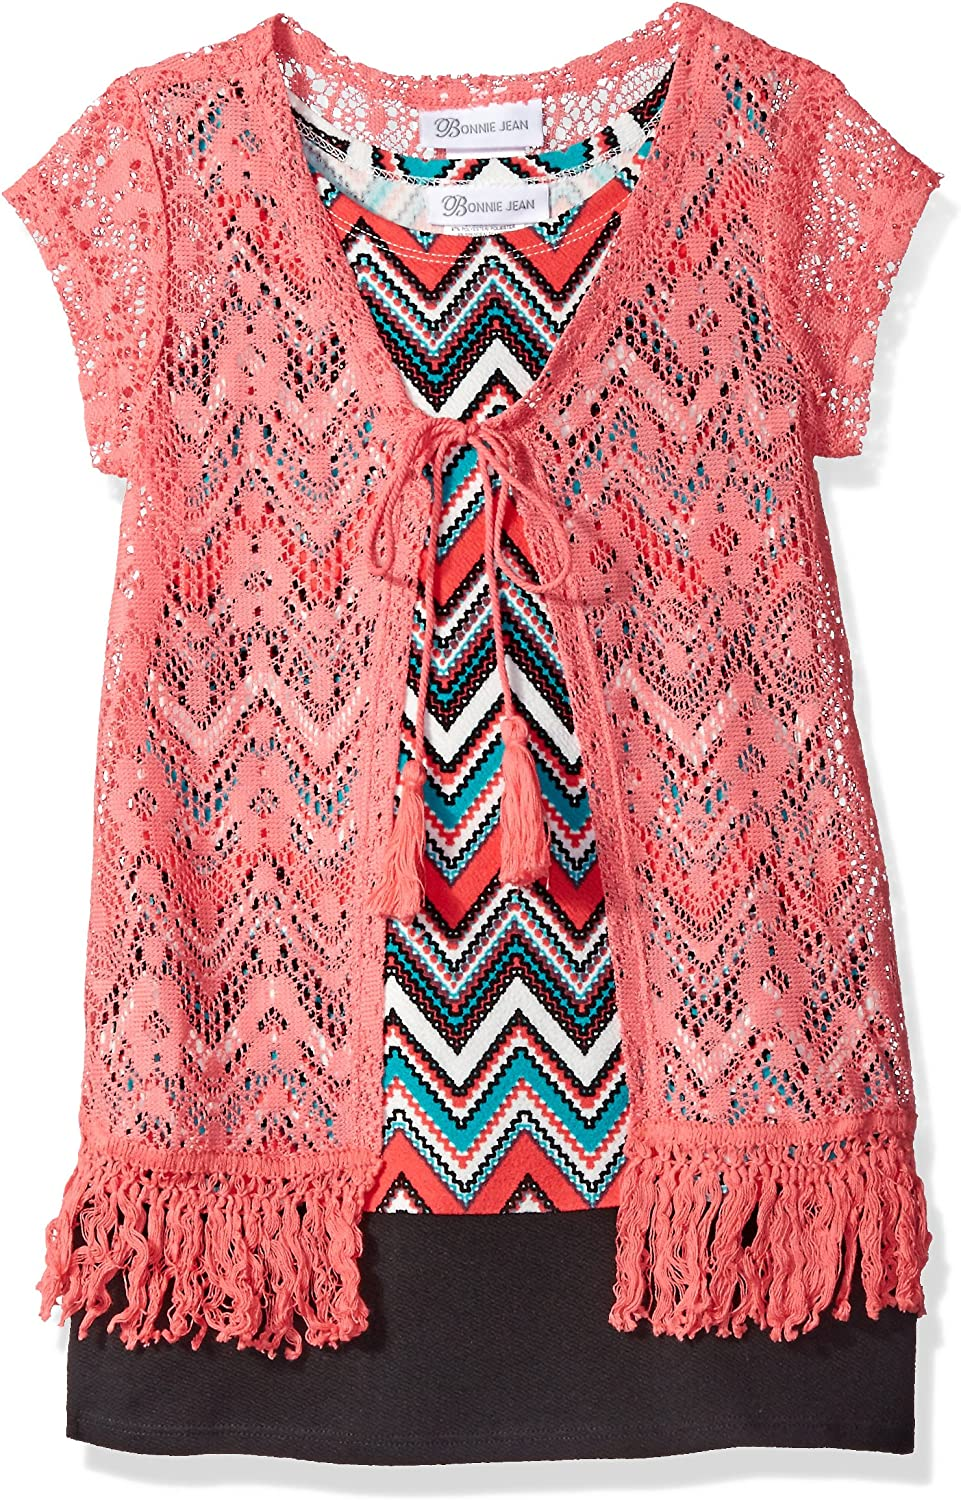 Bonnie Jean, Pink, Big Girls' Printed Textured Knit Shift Dress with Fringe Lace Vest, Coral, 10